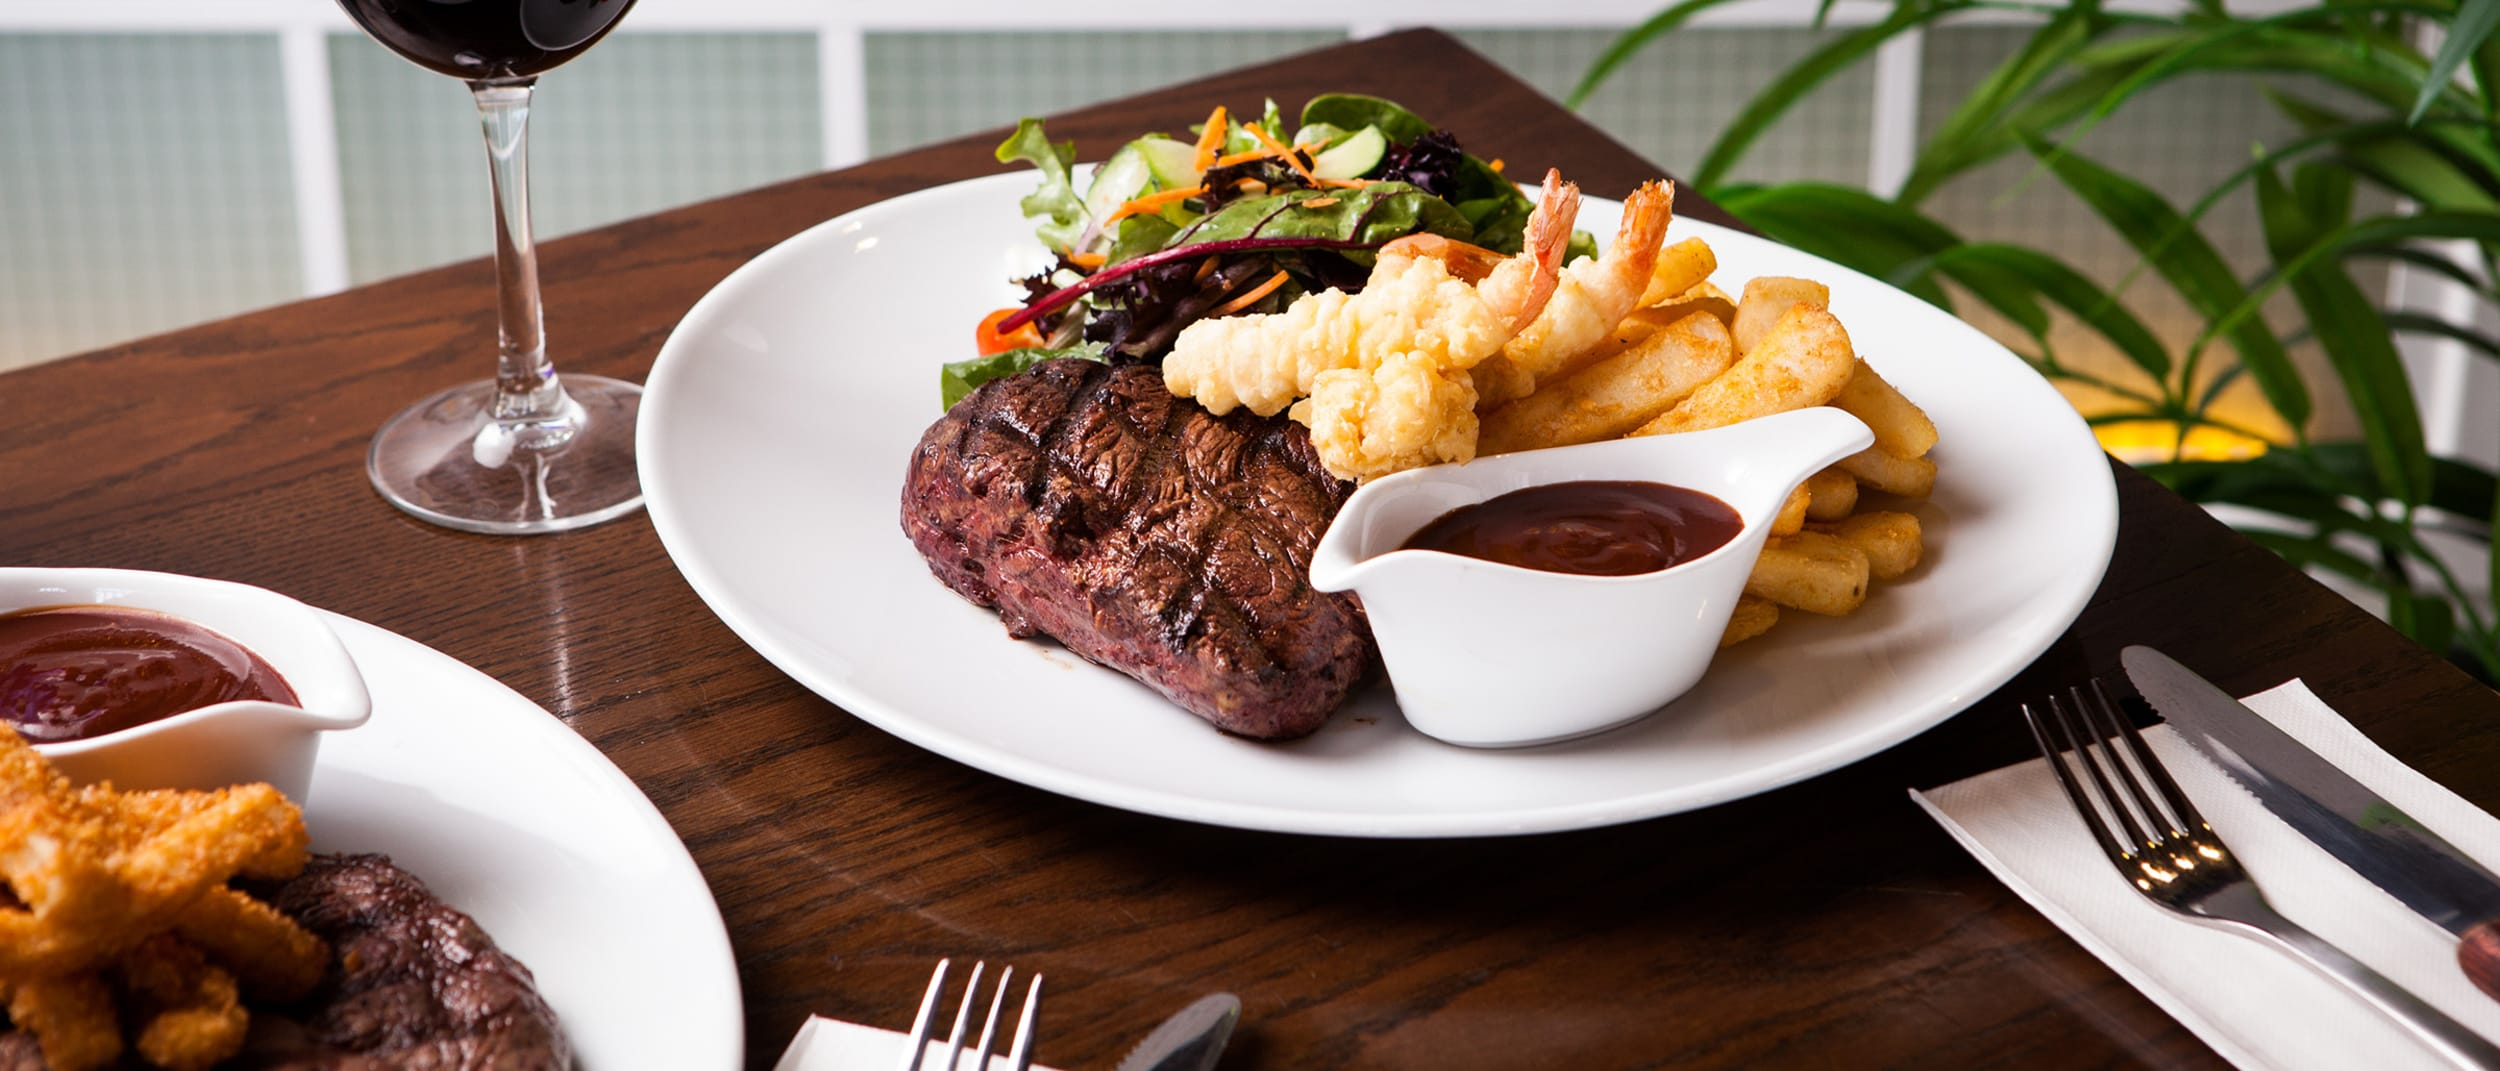 Beach House Bar & Grill: buy one, get one free steak on Monday